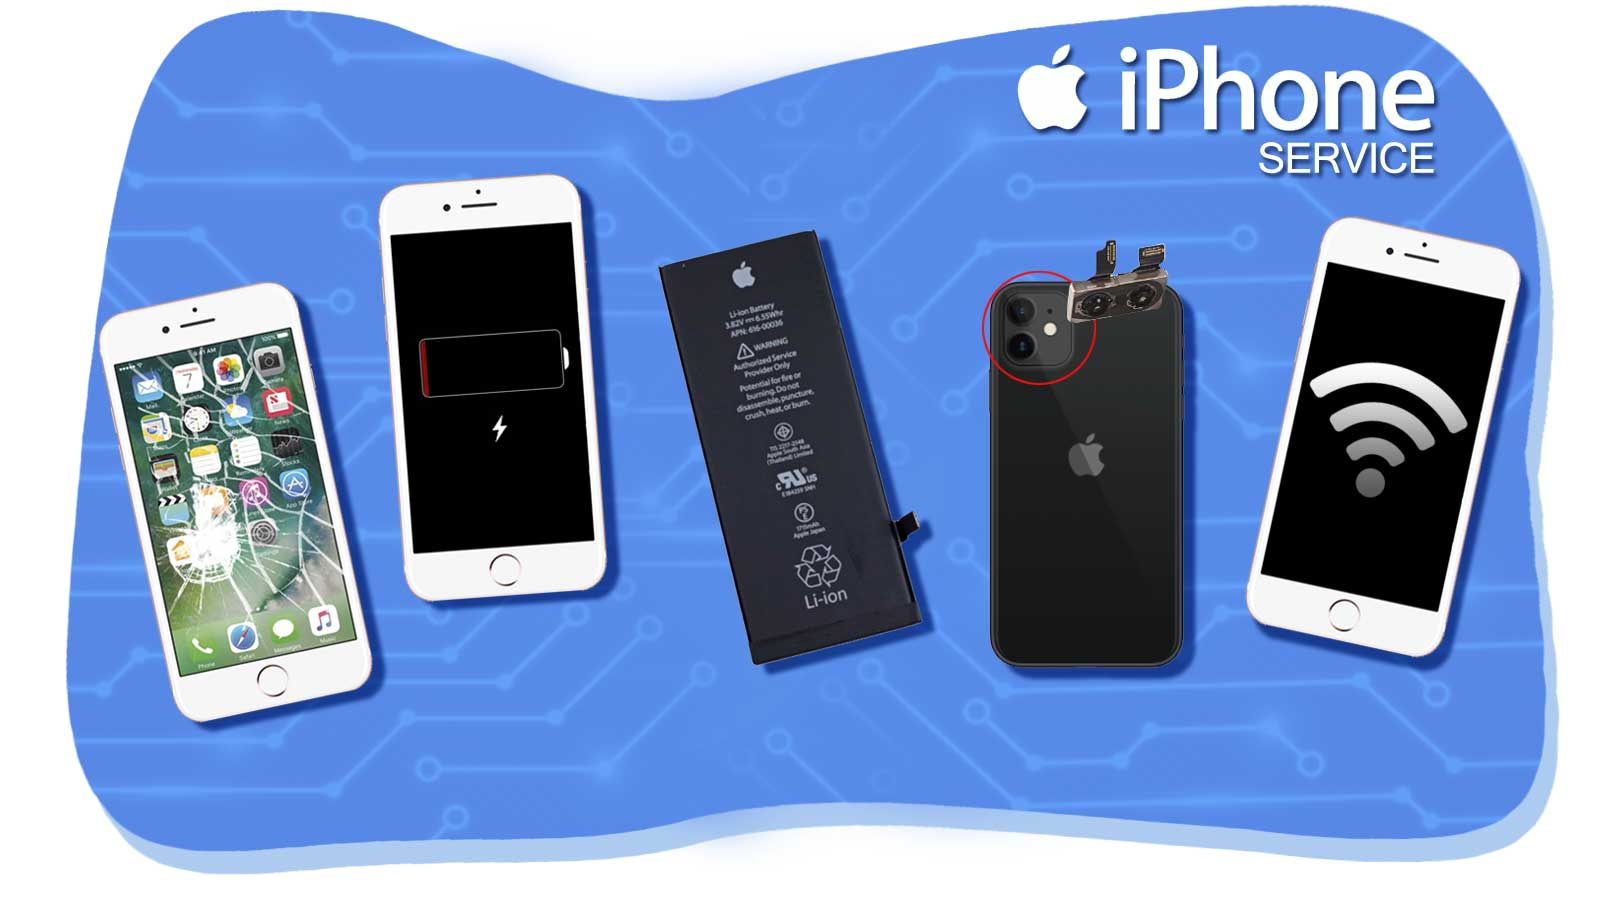 iPhone service in Chennai